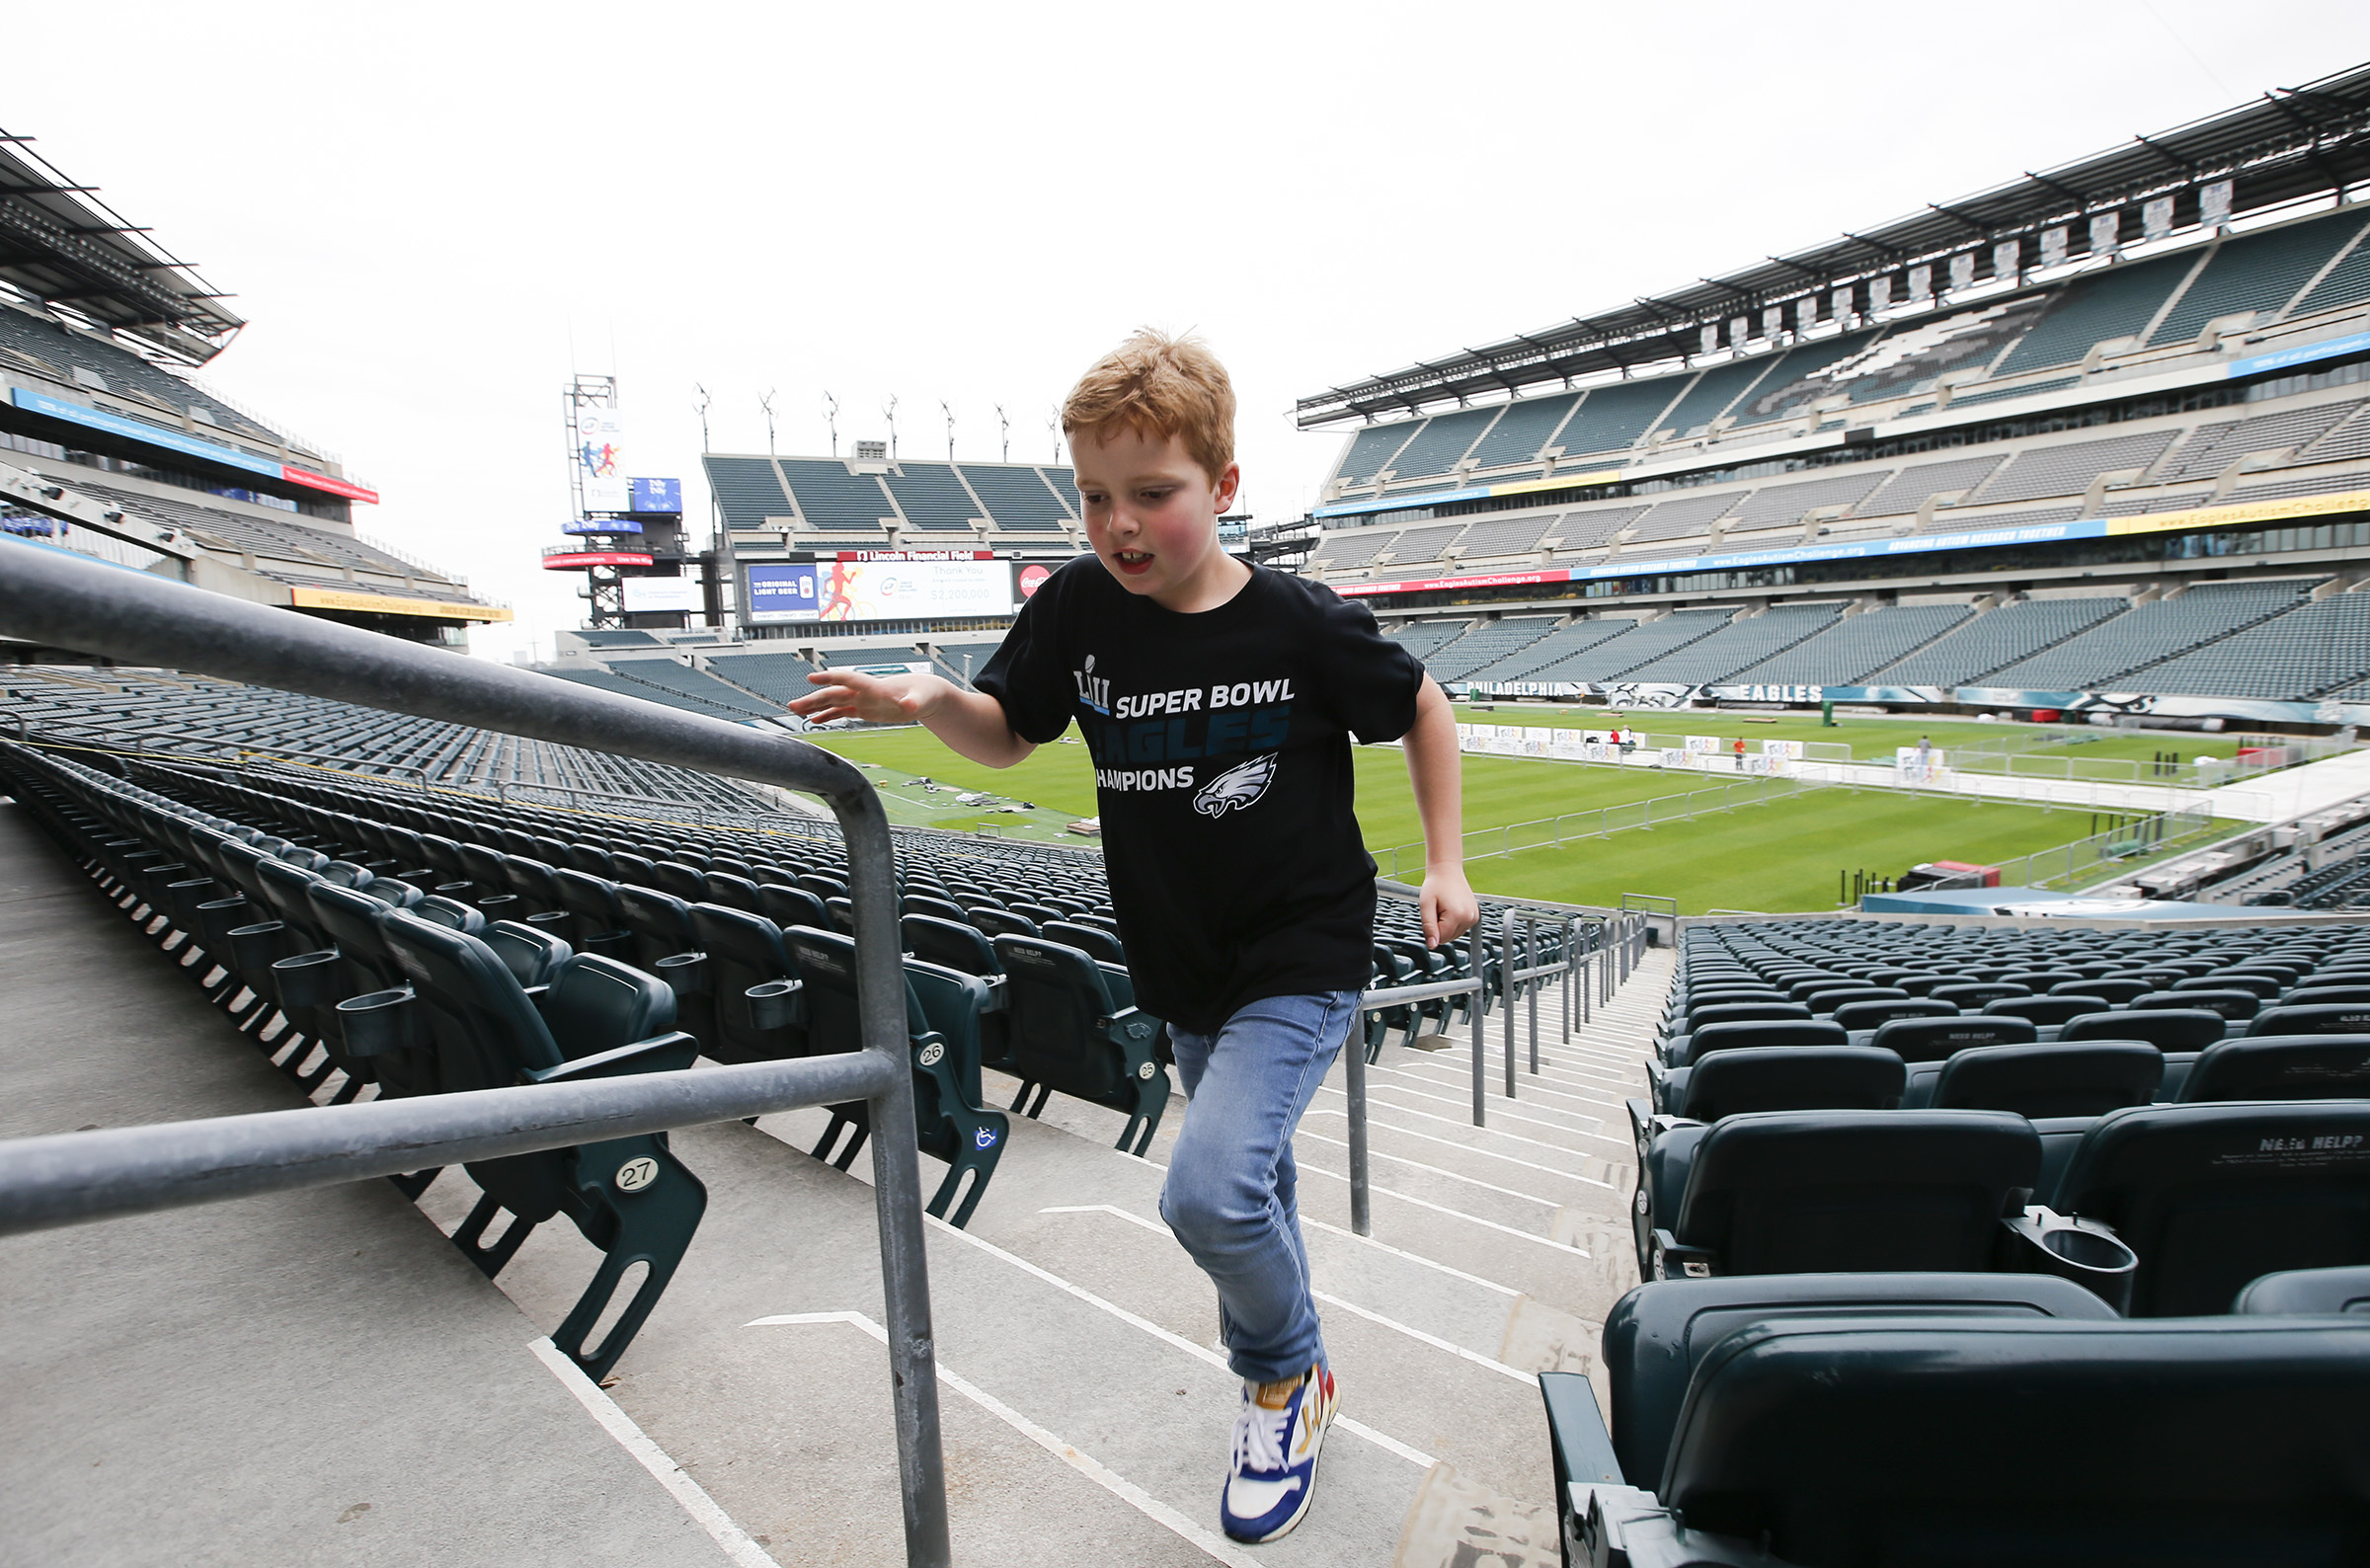 Thijmen Hendriks, 8, runs up the stairs inside Lincoln Financial Field on Friday, May 18, 2018.